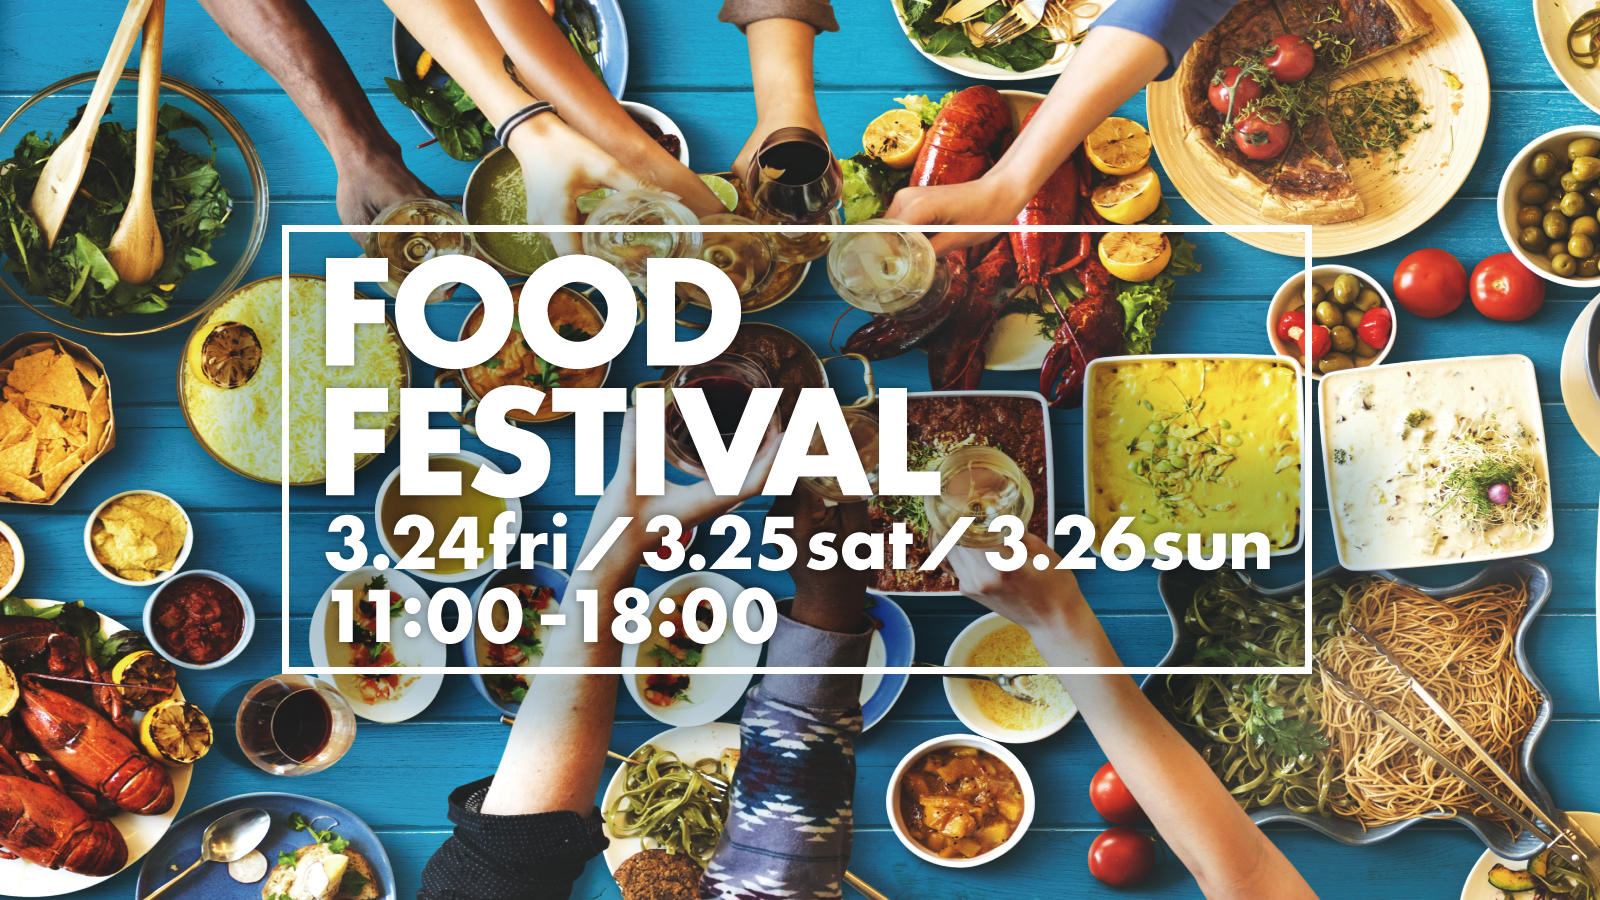 3.24fri/3.25sat/3.26sun FOOD FESTIVAL~NINE Days GROOVY~